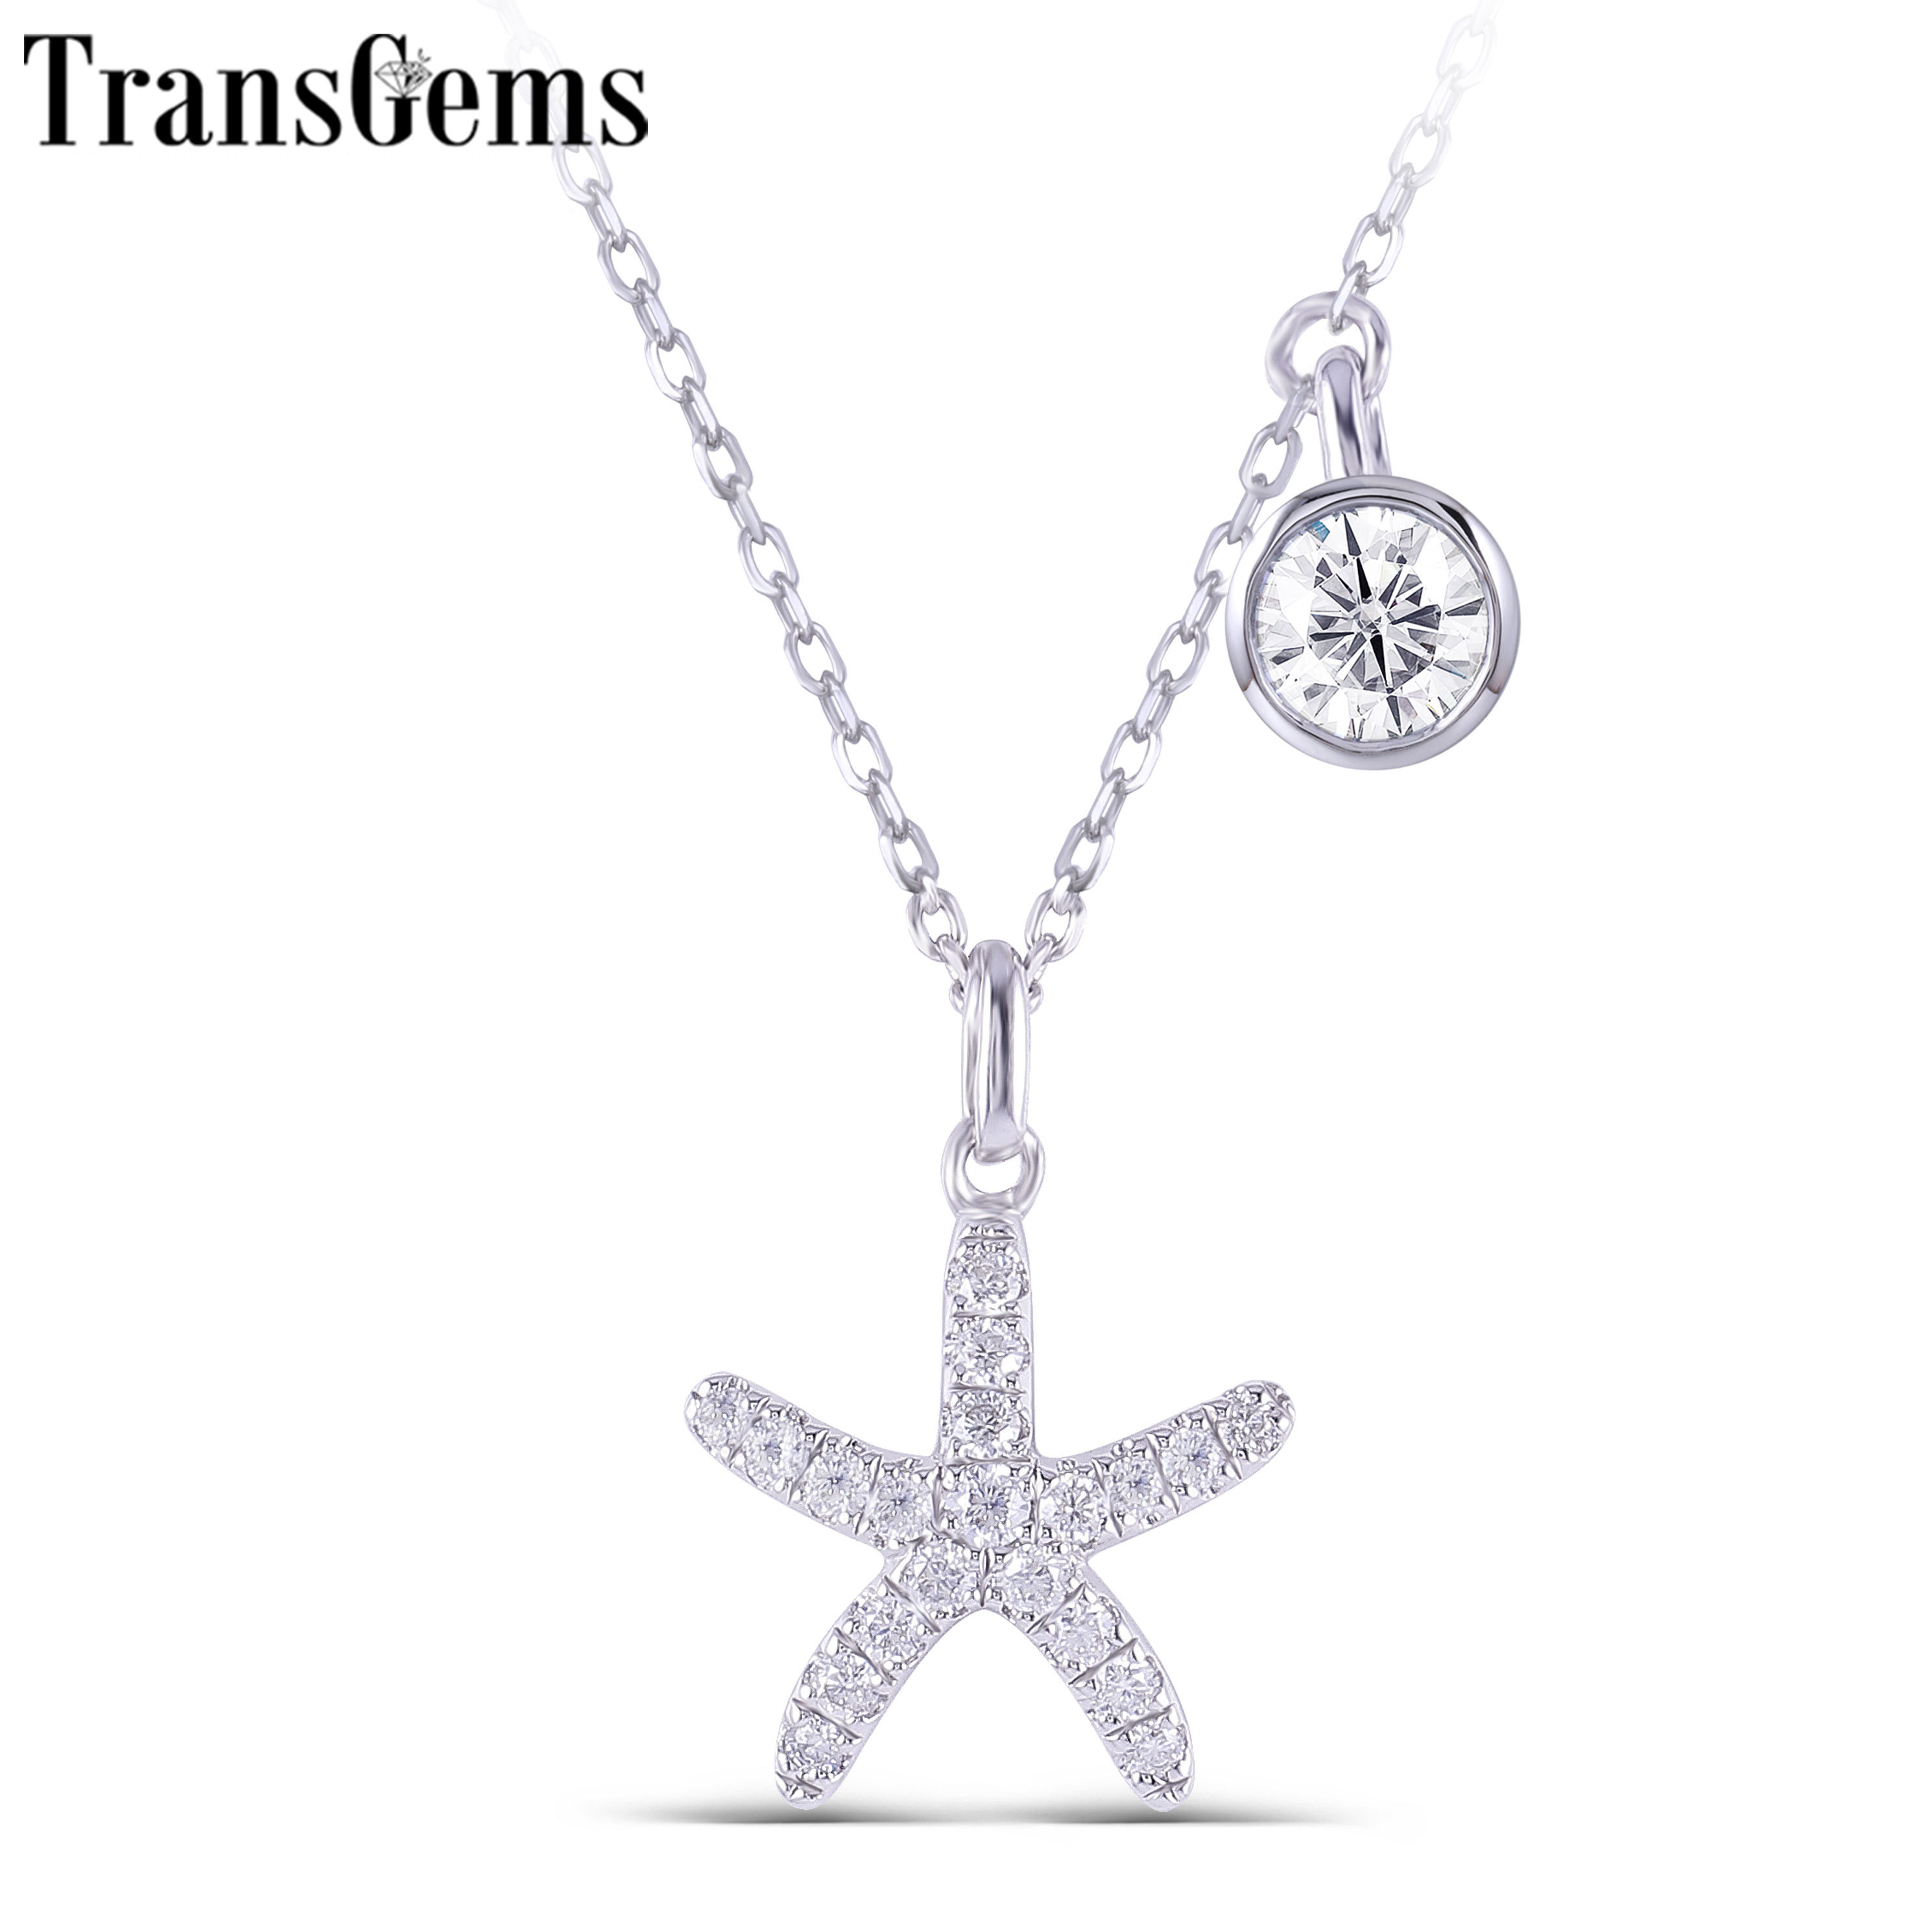 TransGems 14K 585 White Gold Center 5mm F Colorless Starfish Pendant Necklace With Accents For Women Wedding Gifts Birthday Gift